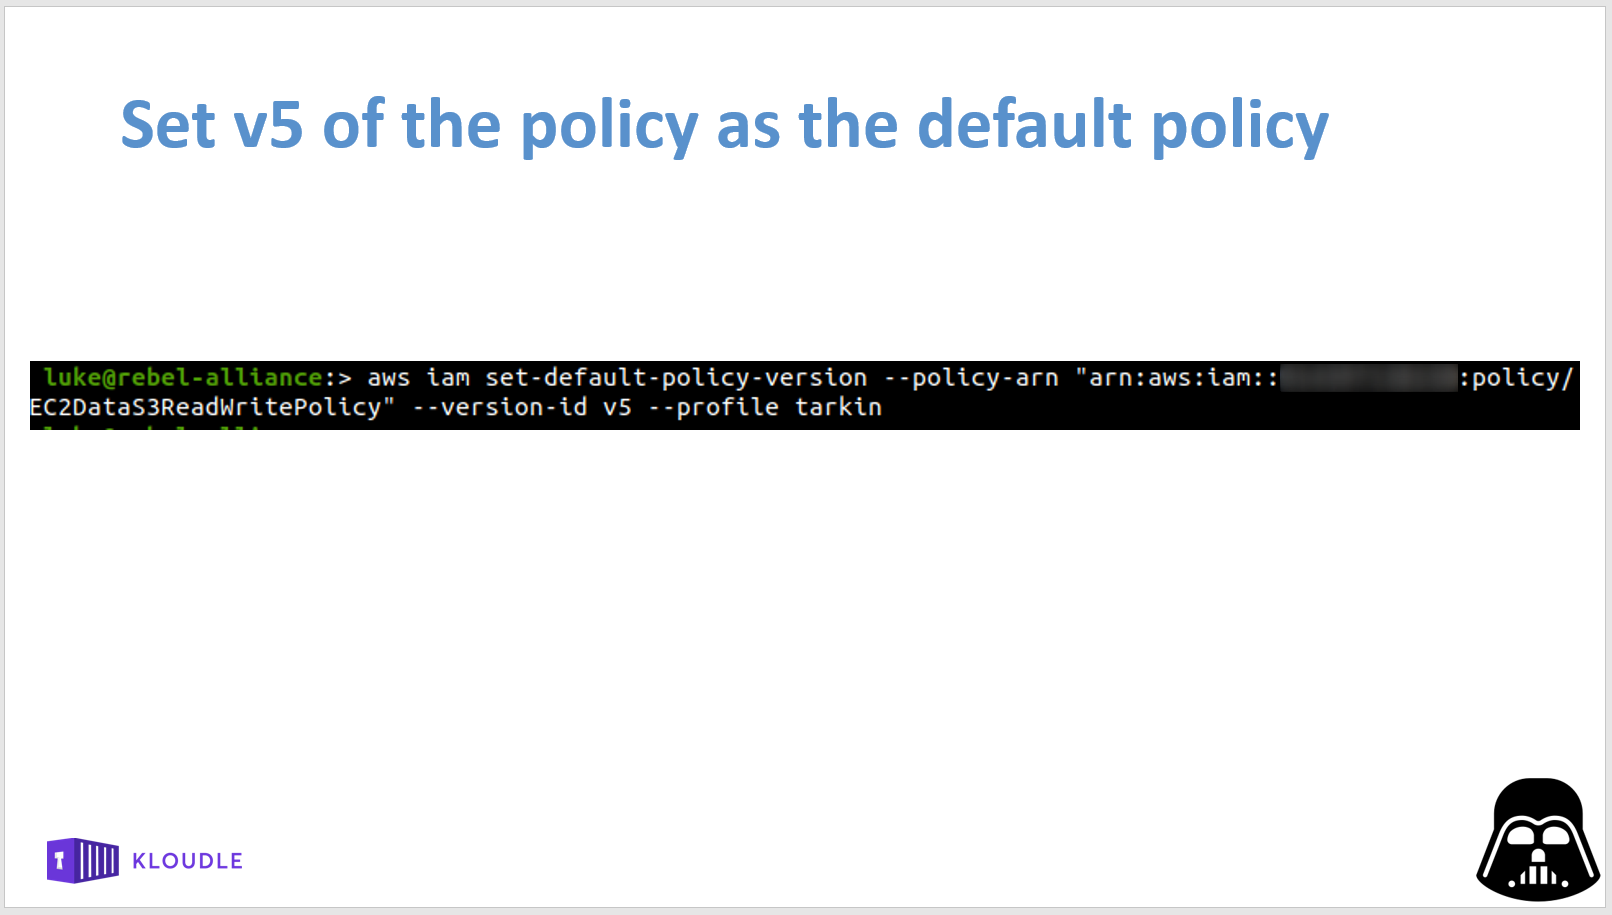 Set a different policy version as default